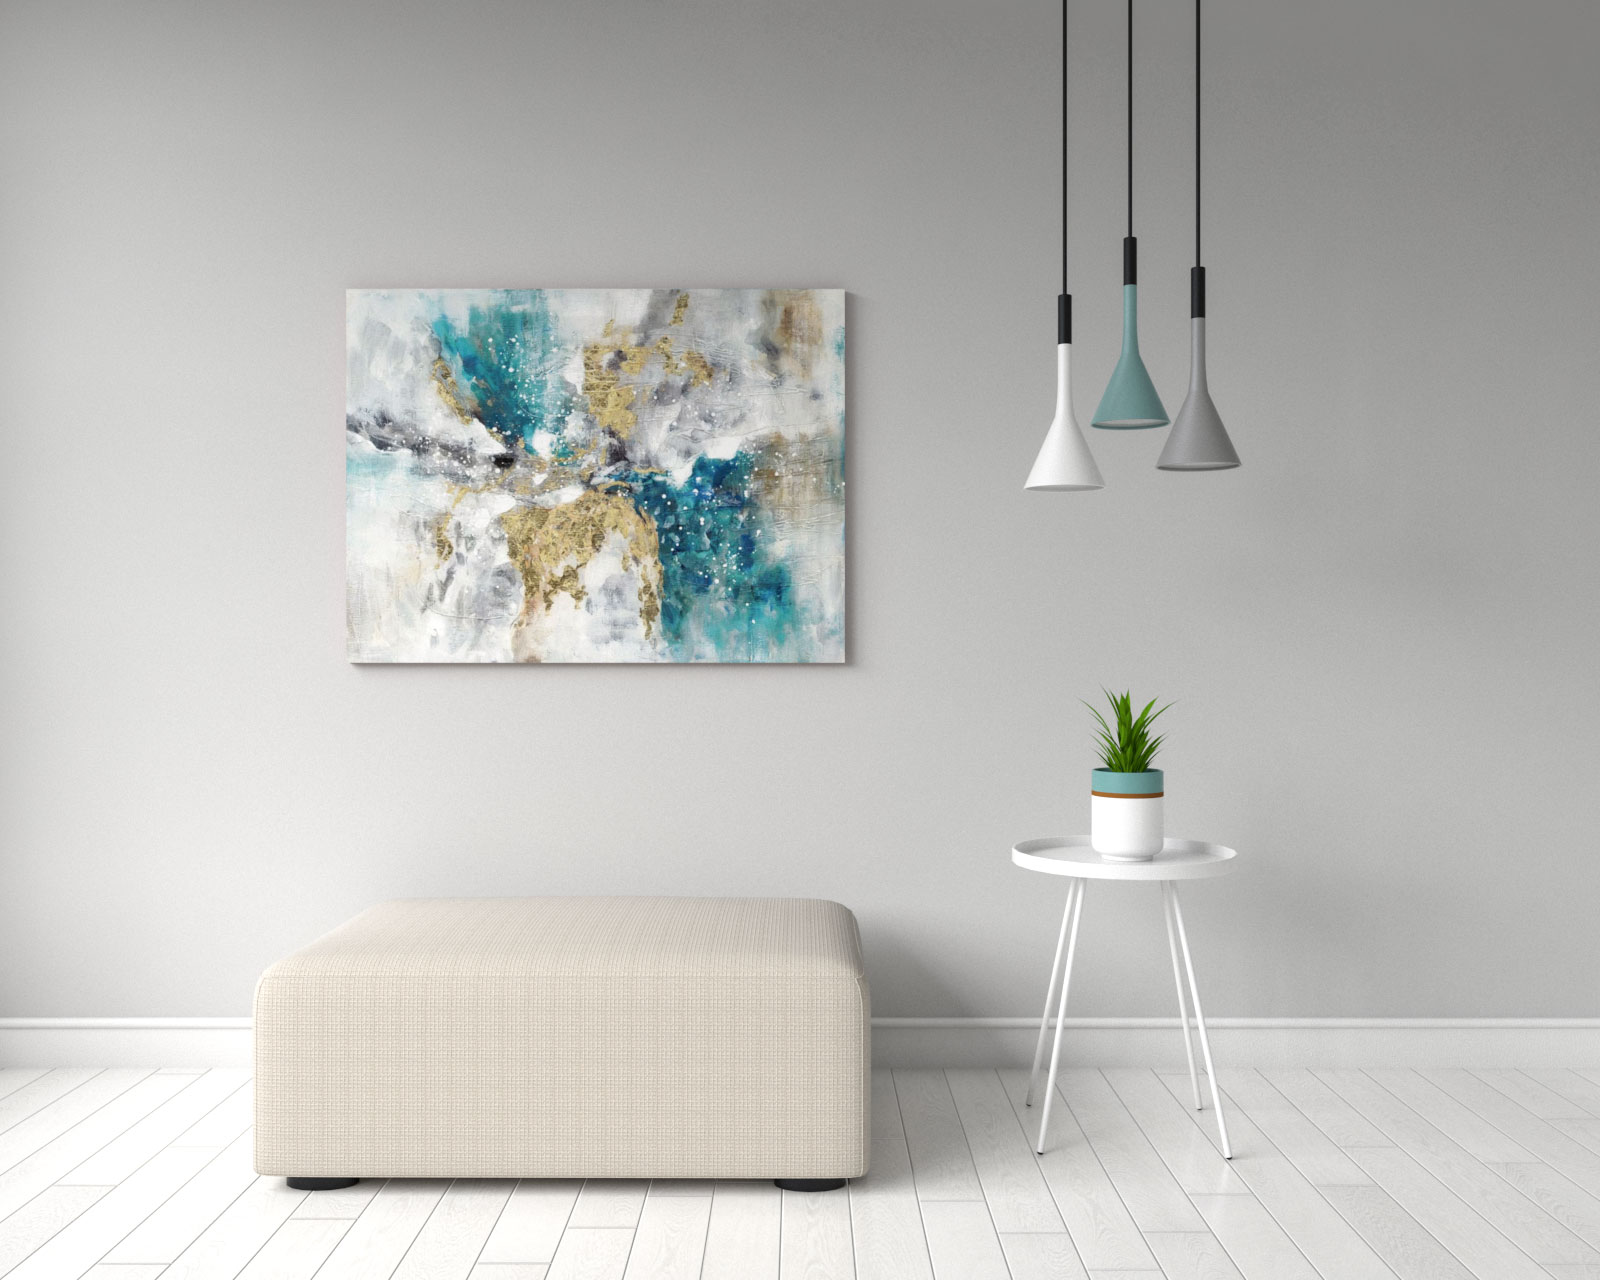 Gorgeous simple teal and gold abstract wall art